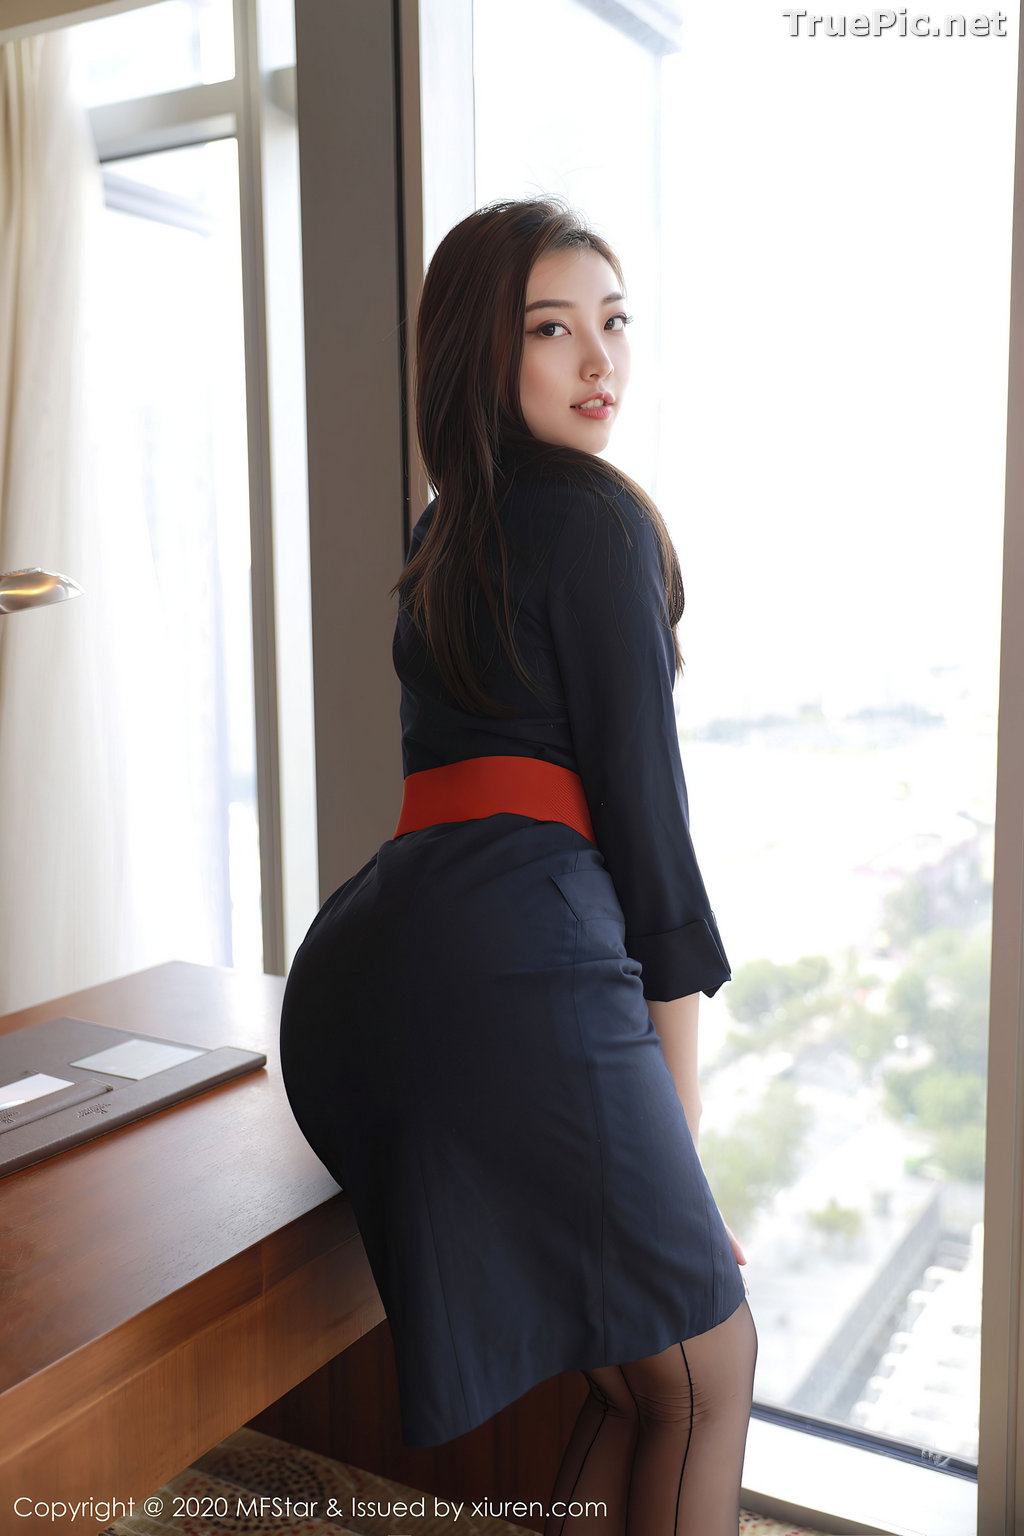 Image MFStar Vol.404 – Chinese Model – Zheng Ying Shan (郑颖姗) – Sexy Office Girl - TruePic.net - Picture-9